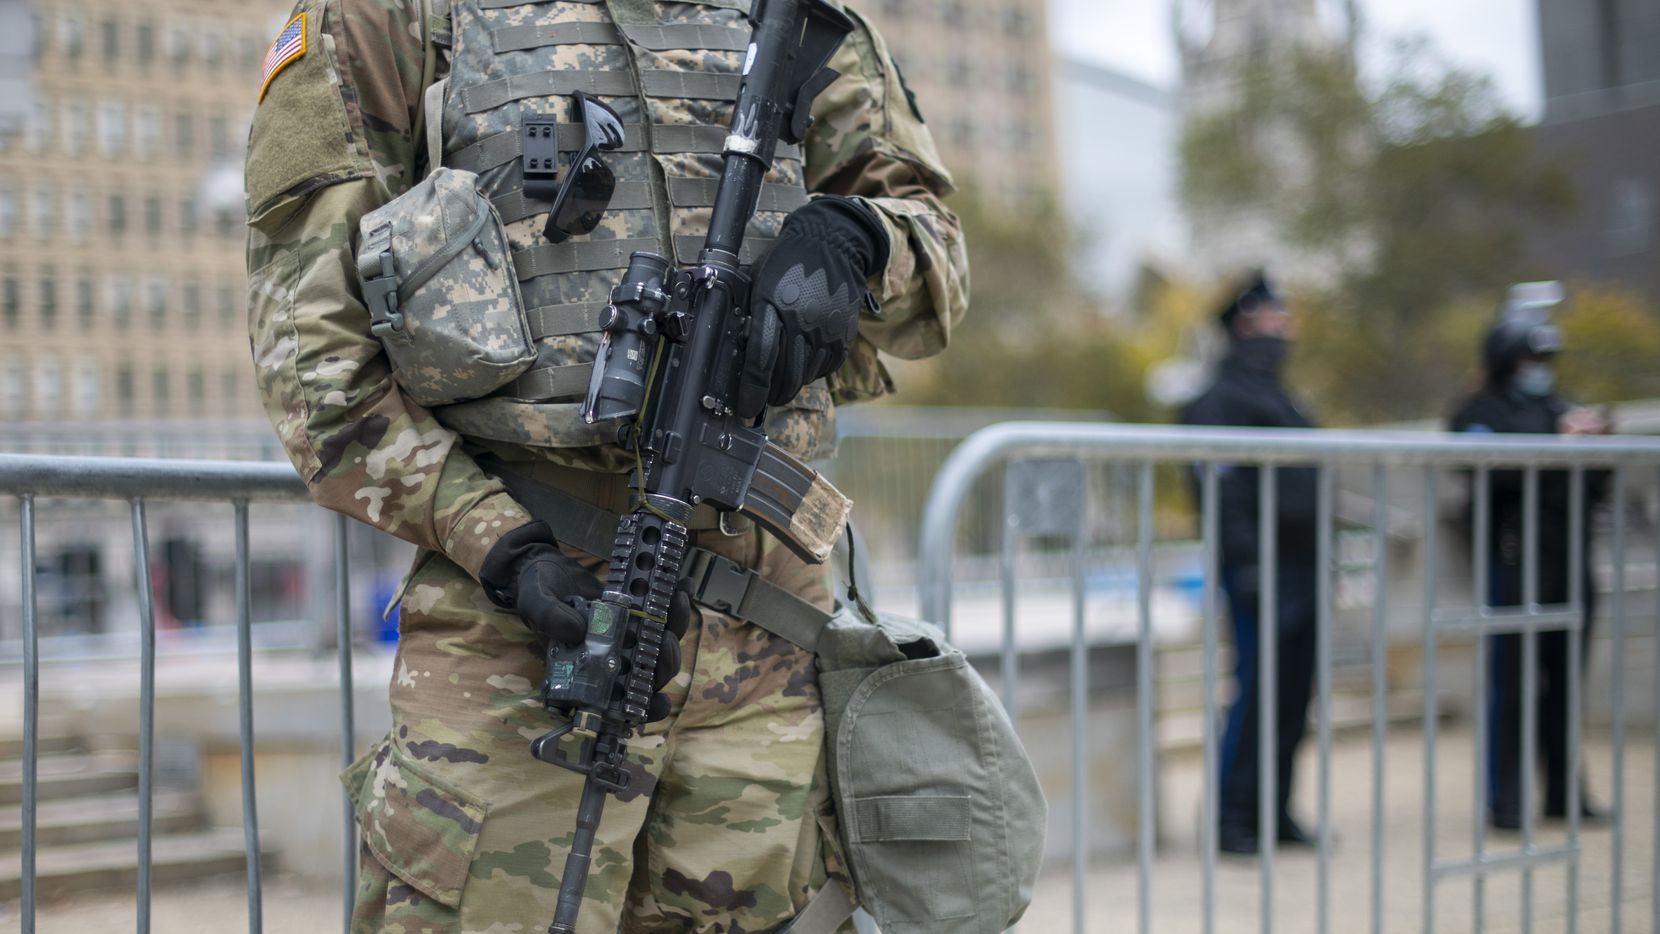 The National Guard monitors activity near Philadelphia City Hall on October 30, 2020 in response to unrest after the death of Walter Wallace Jr. The 27-year-old father of nine children was fatally shot by at least 14 rounds. Officers claimed he was armed with a knife.